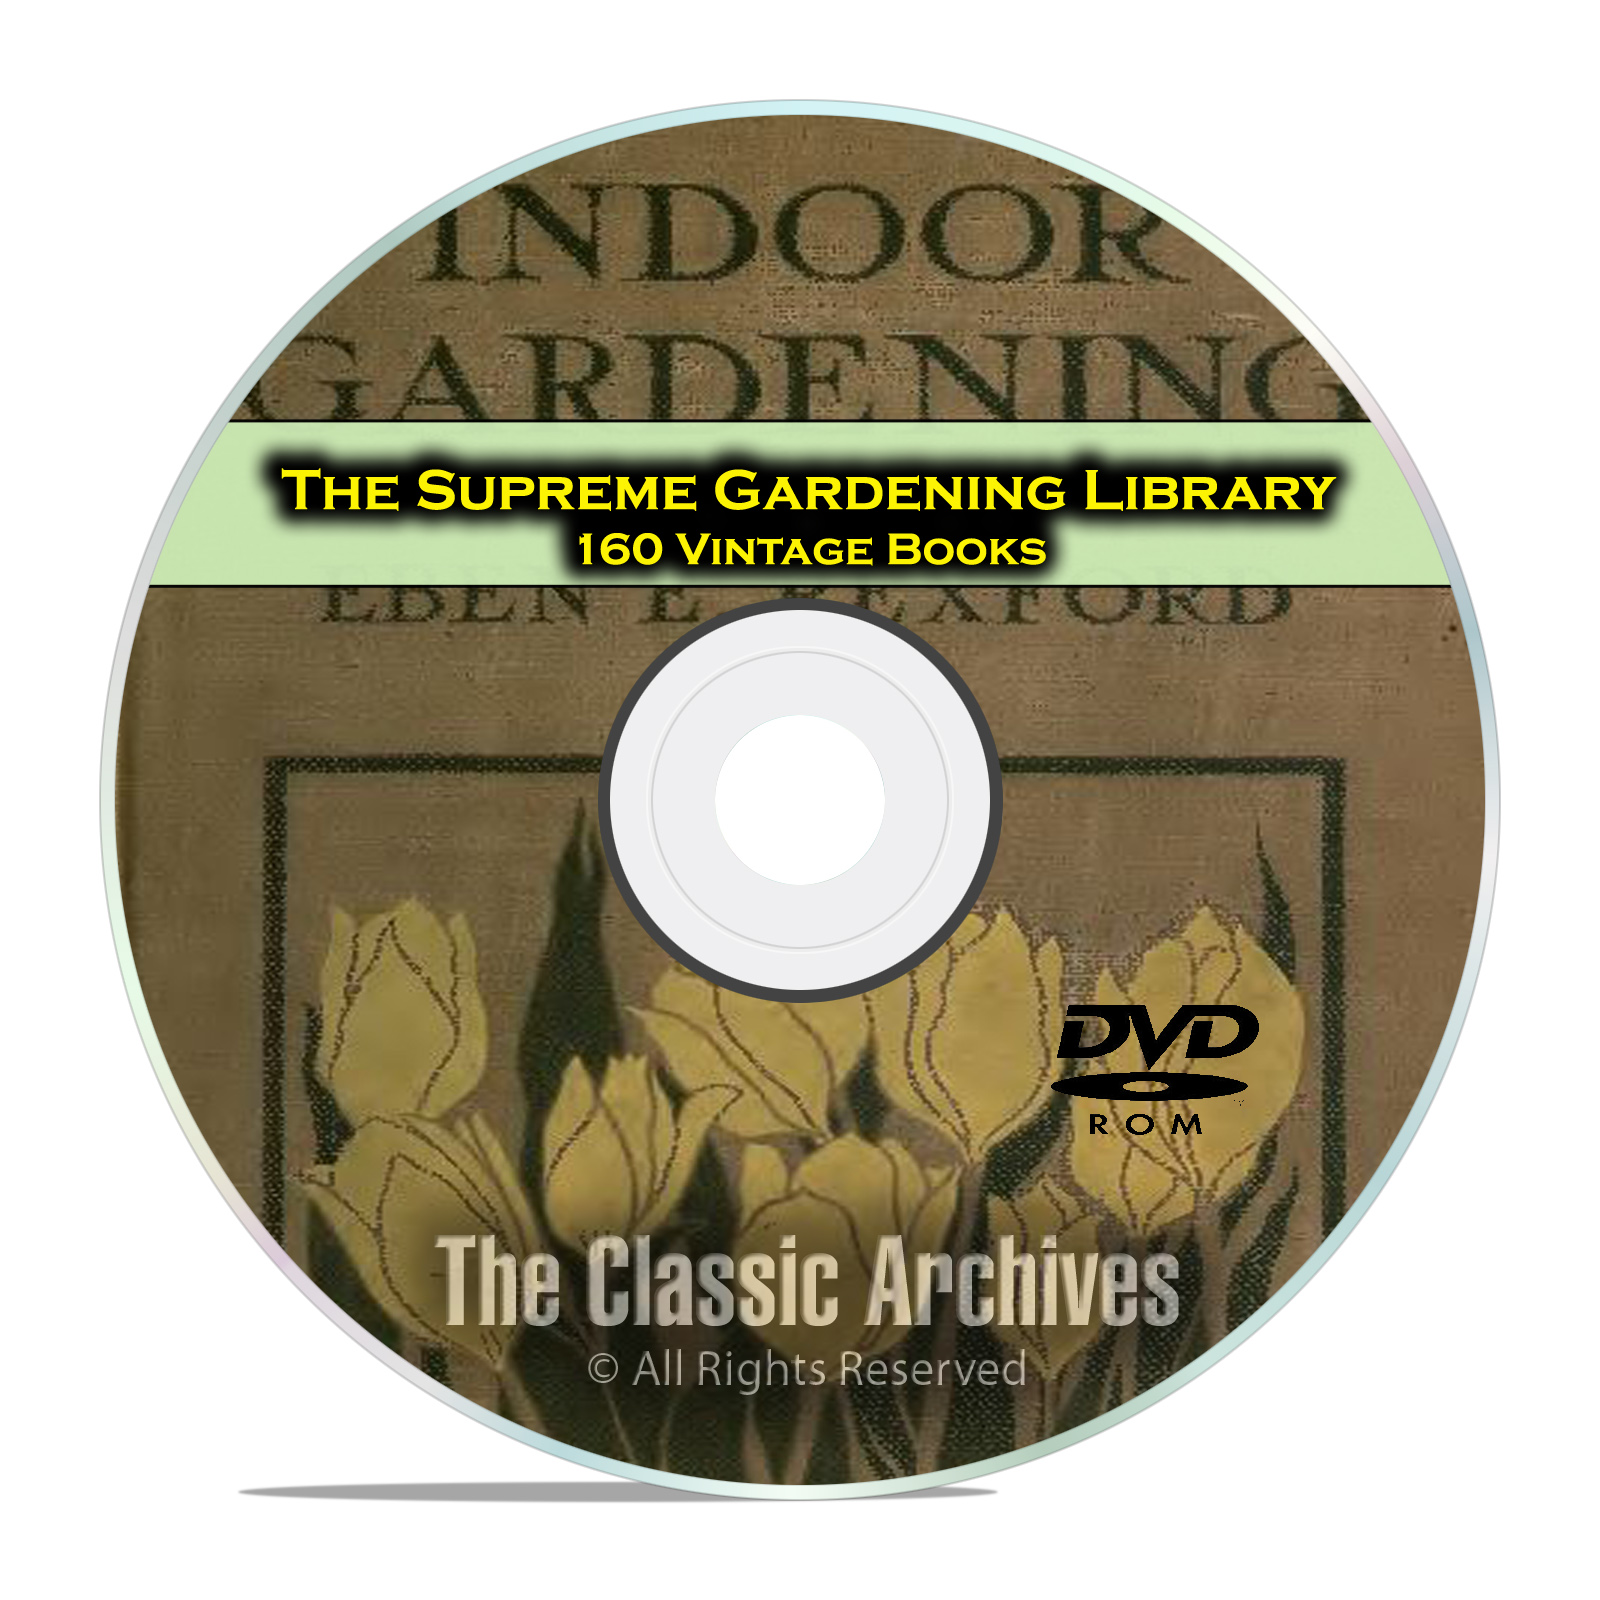 The Supreme Gardening Library, 160 Books Landscaping Garden Plants Grow DVD